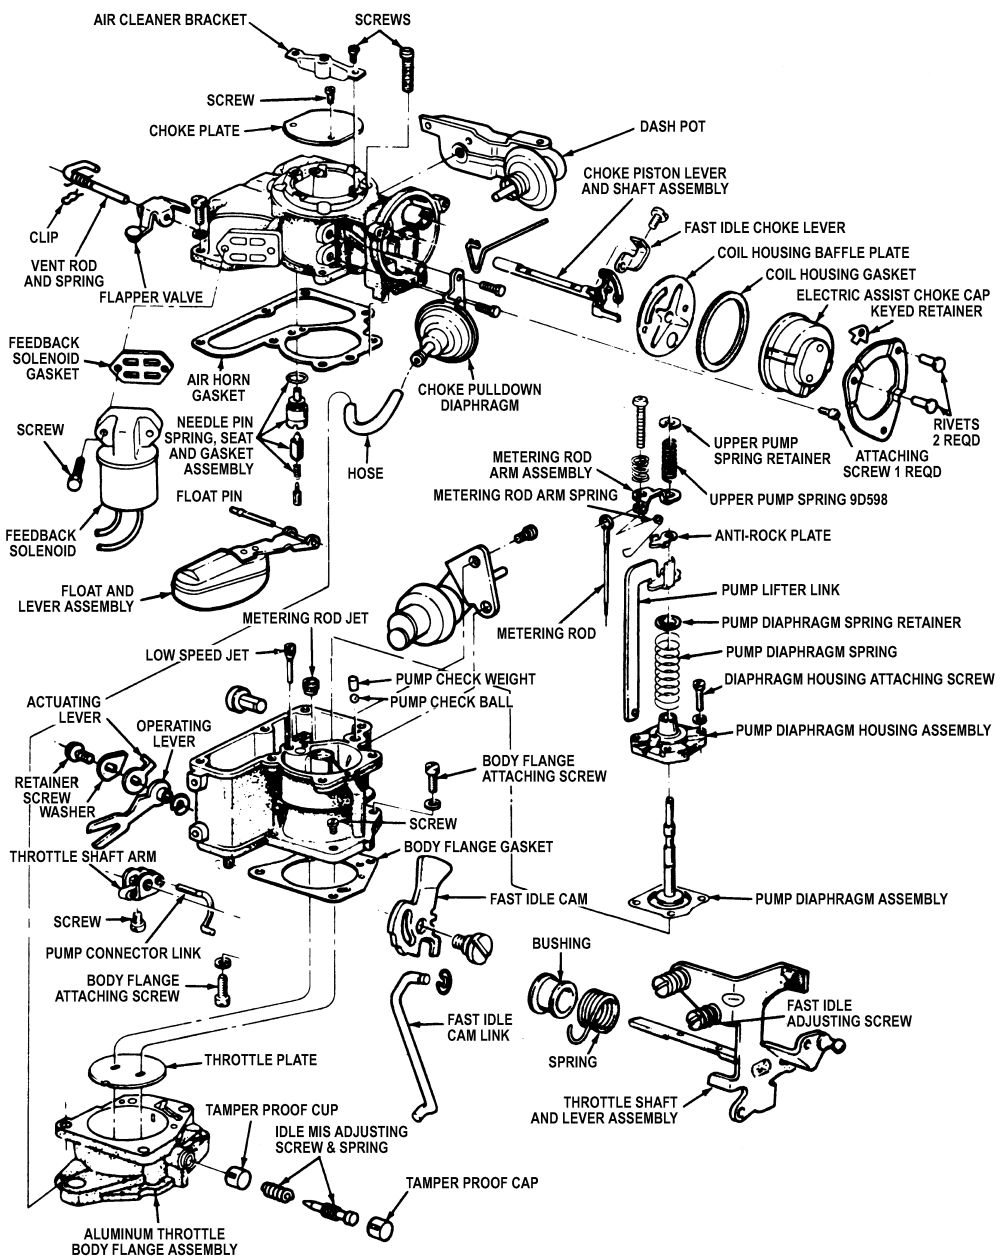 [SCHEMATICS_4CA]  1986 Ford Truck Wiring Diagram - E5 wiring diagram | 1986 F150 4 9l Engine Diagram |  | KUBB-AUF.DE